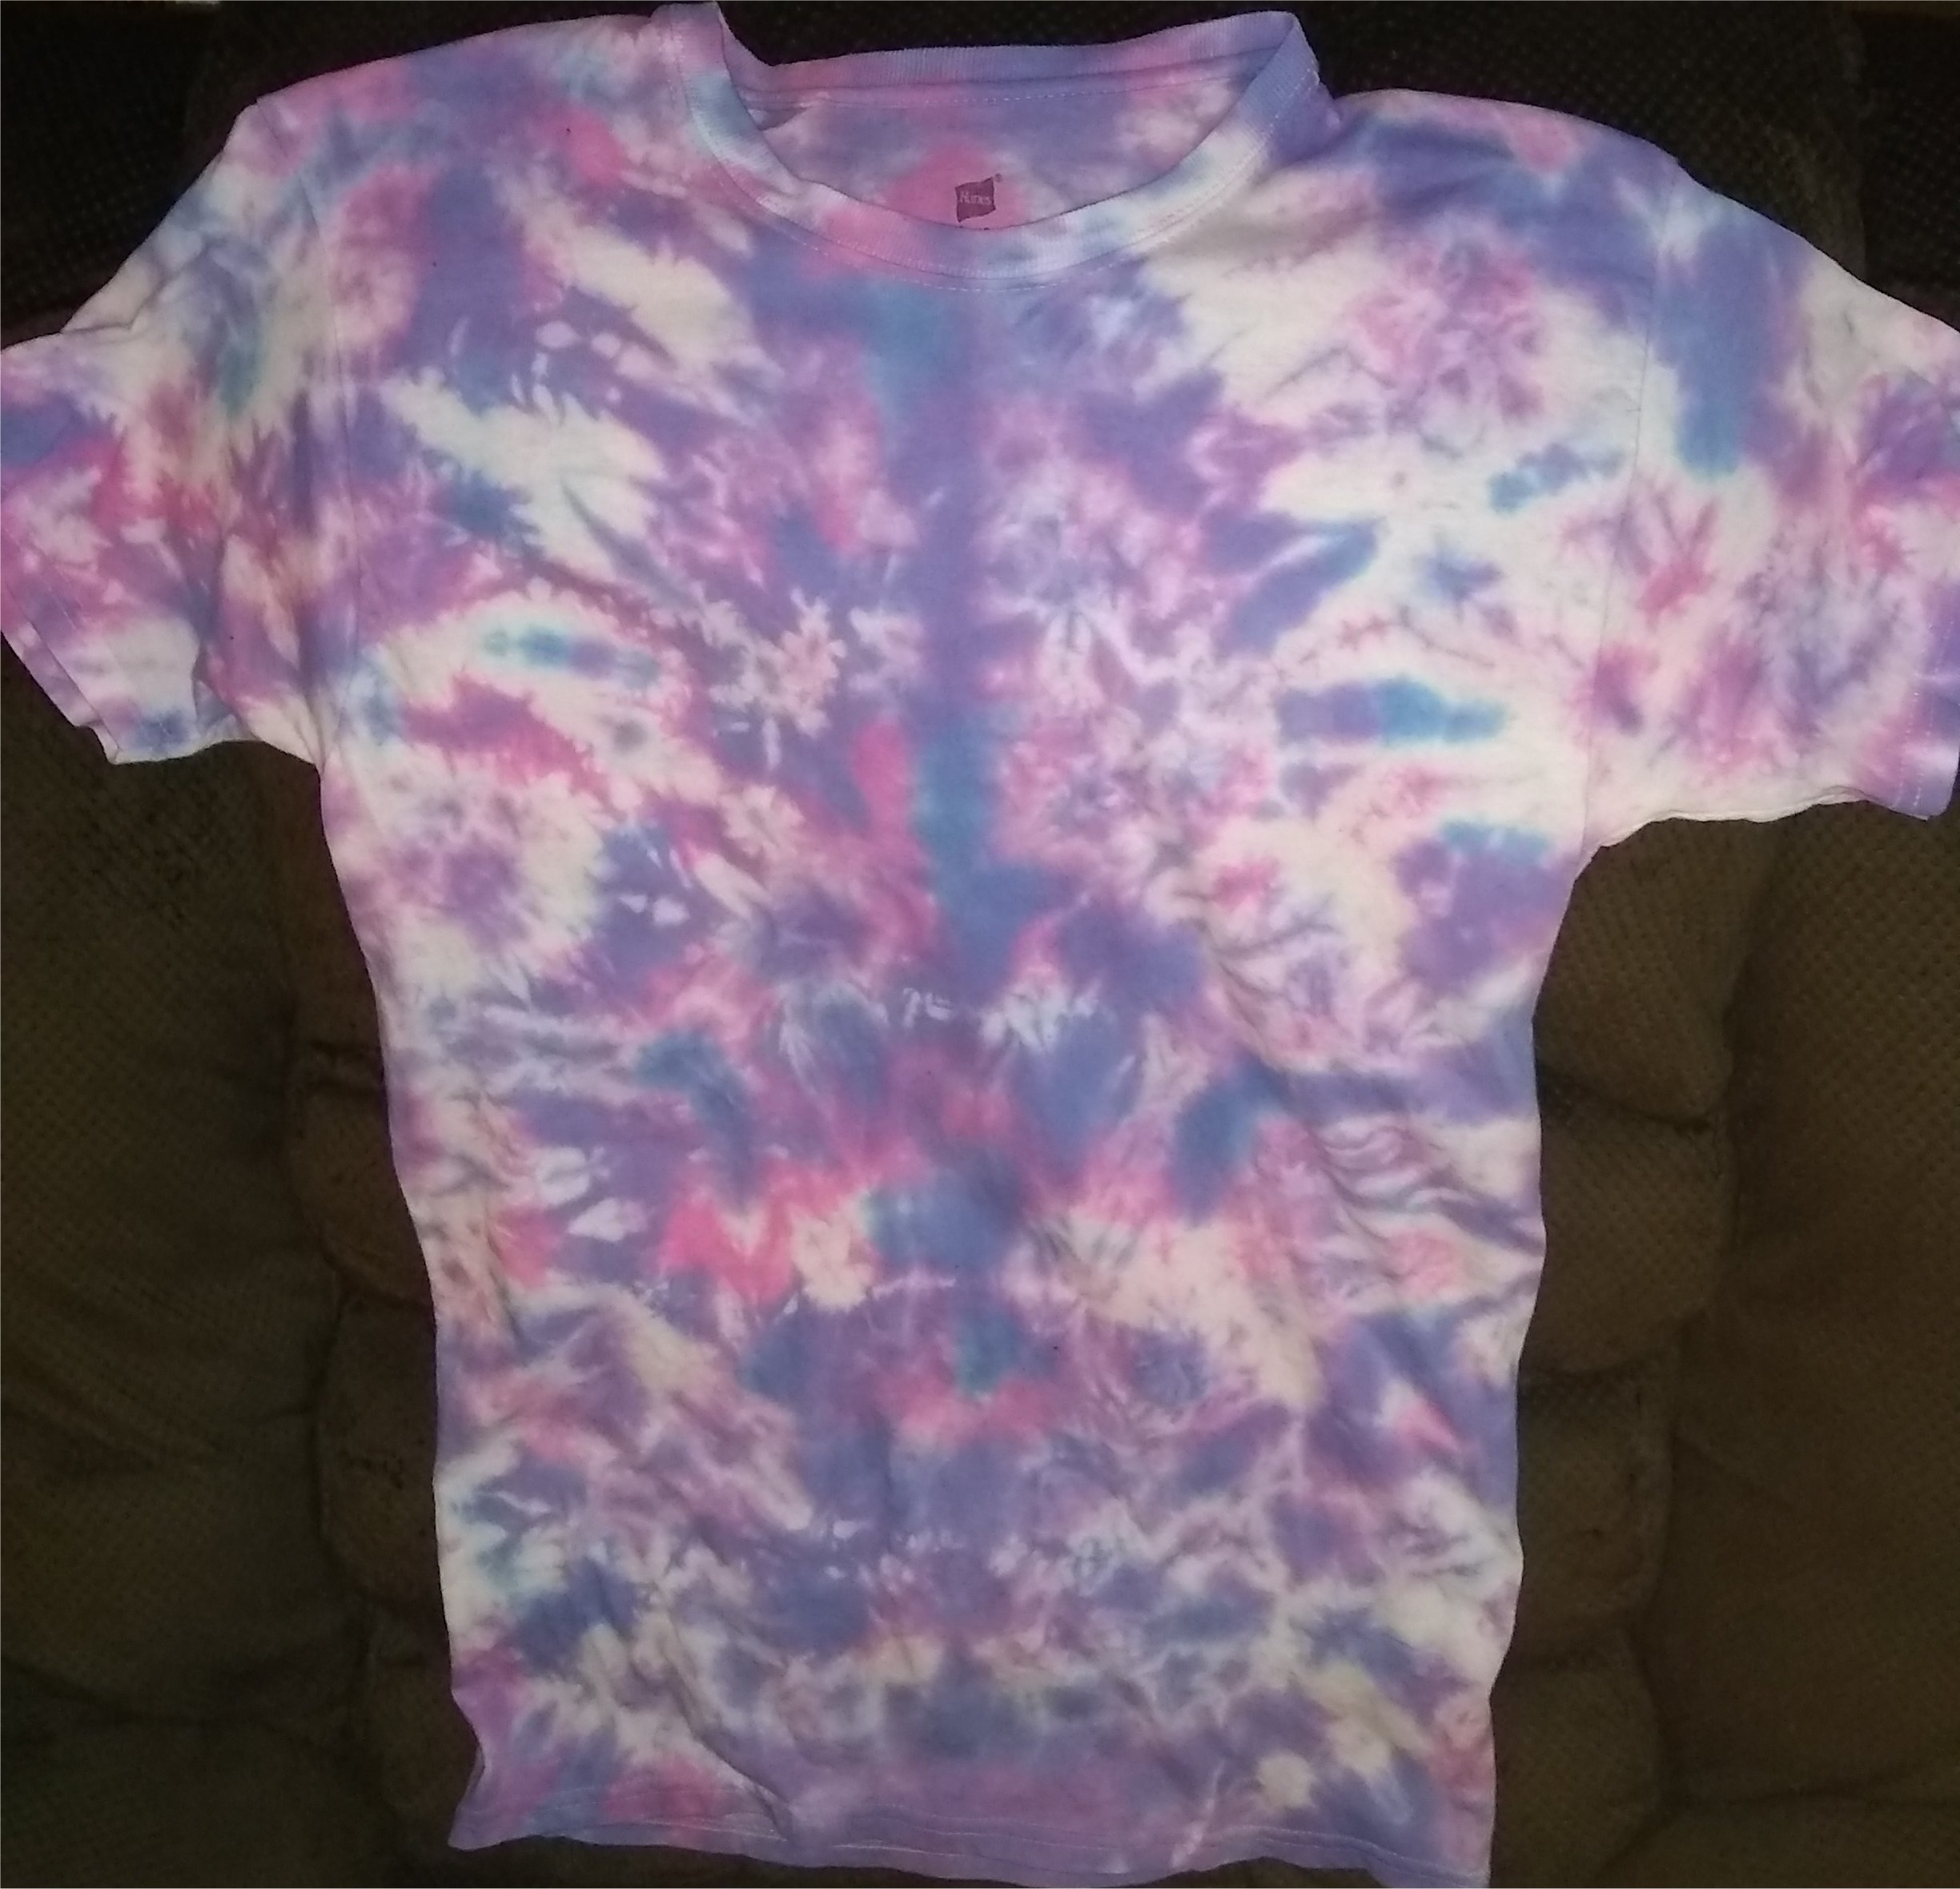 Cotton Candy Ice Dye T Shirt Size: S